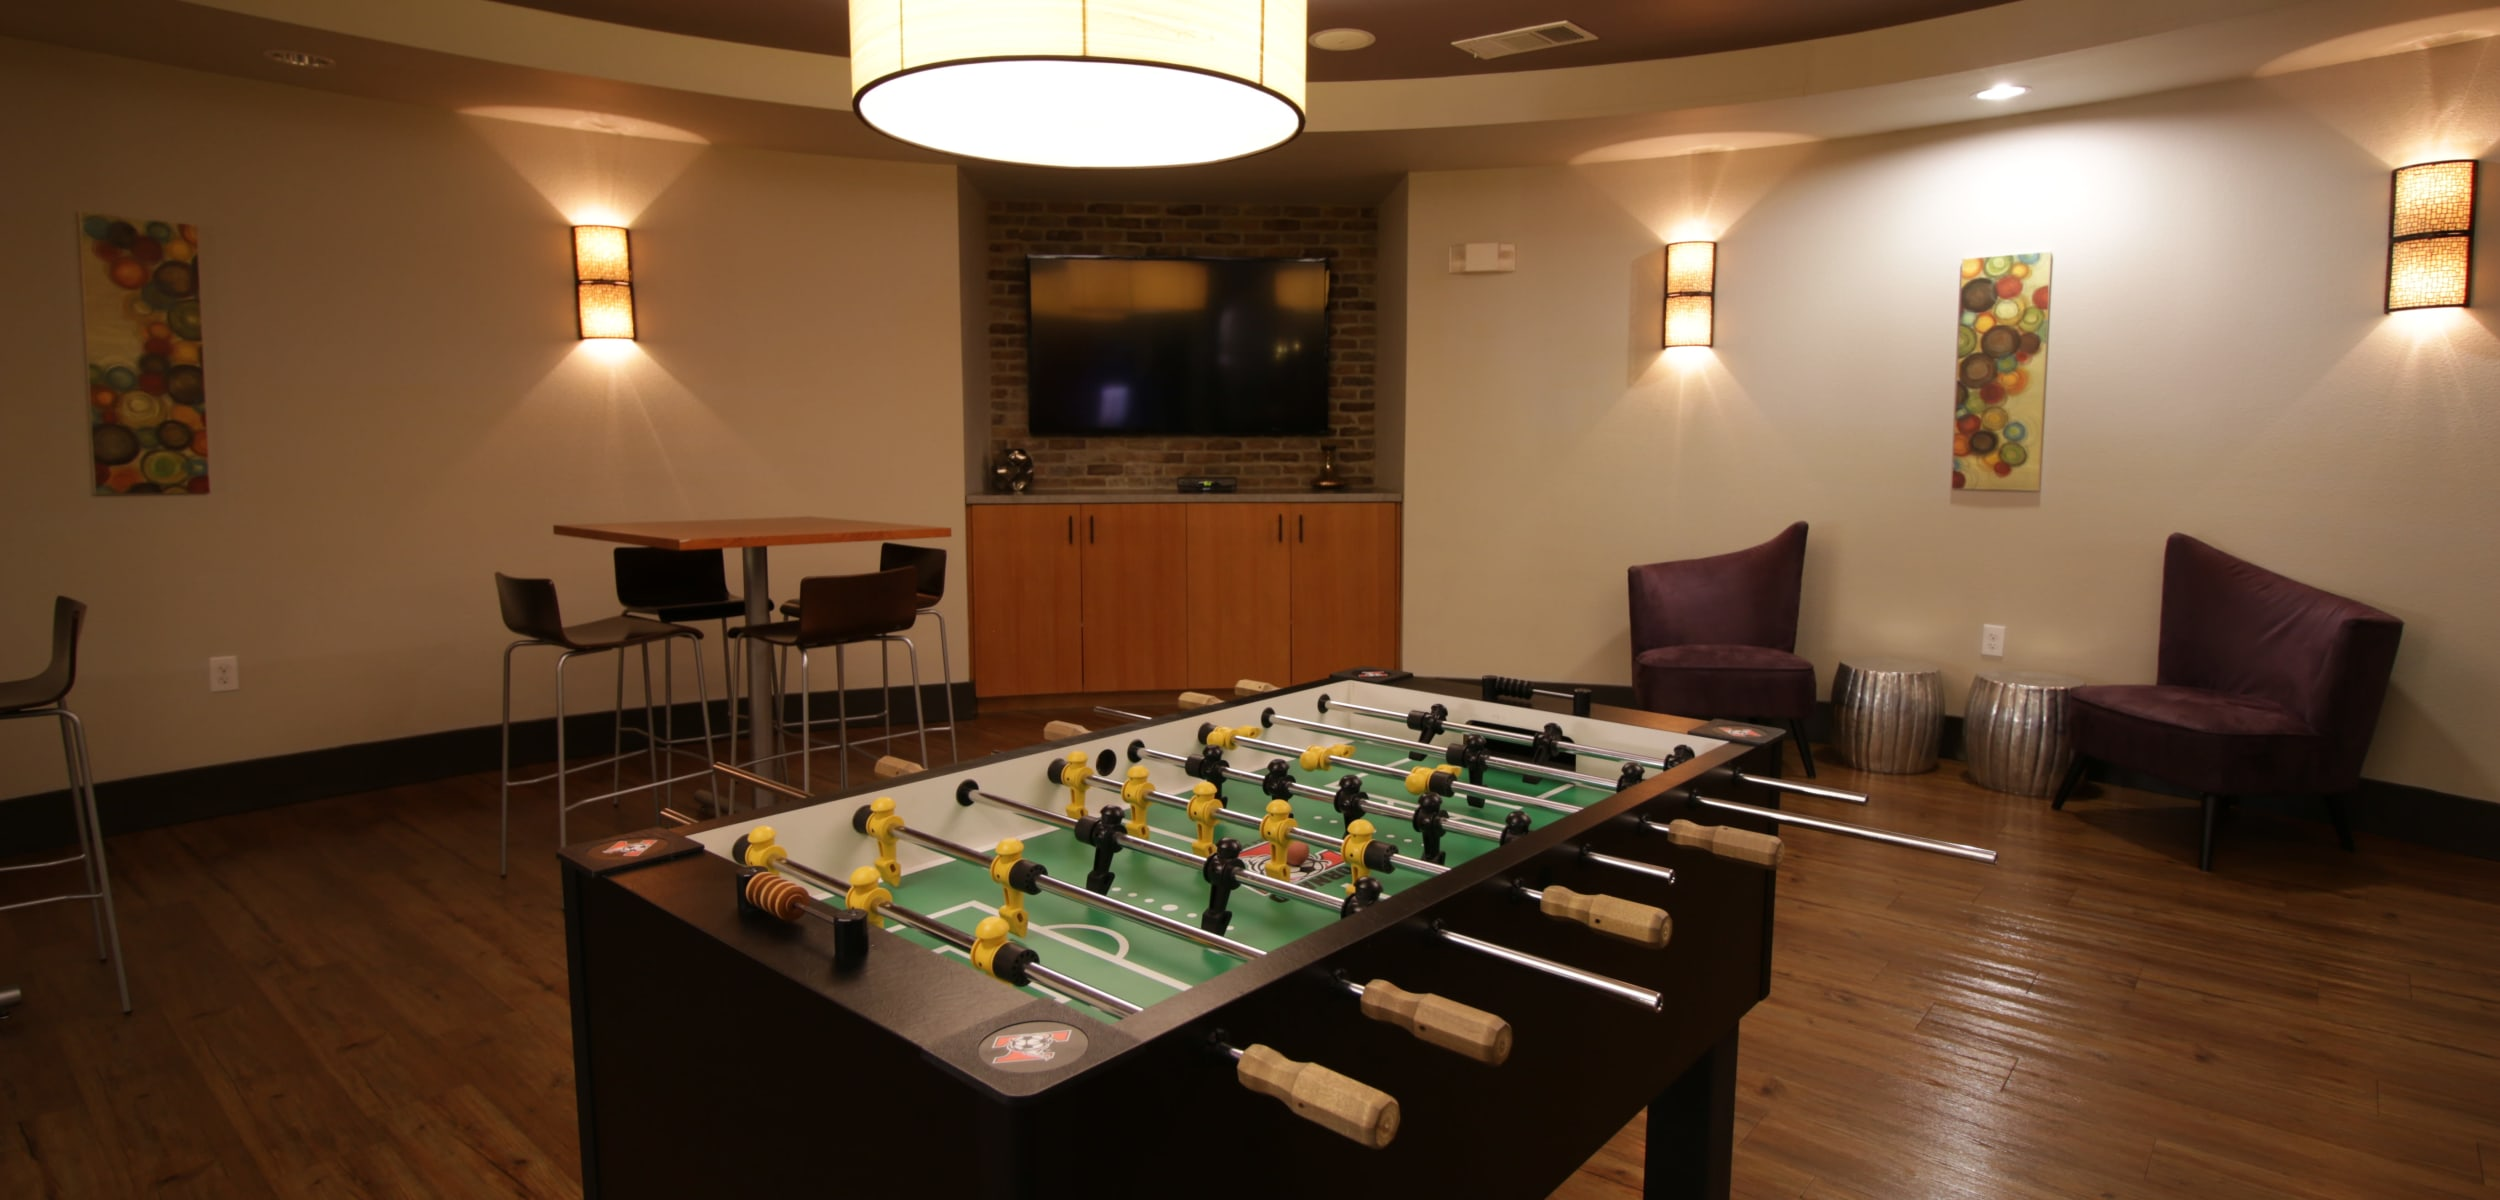 Regents West at 26th's game room in Austin, Texas